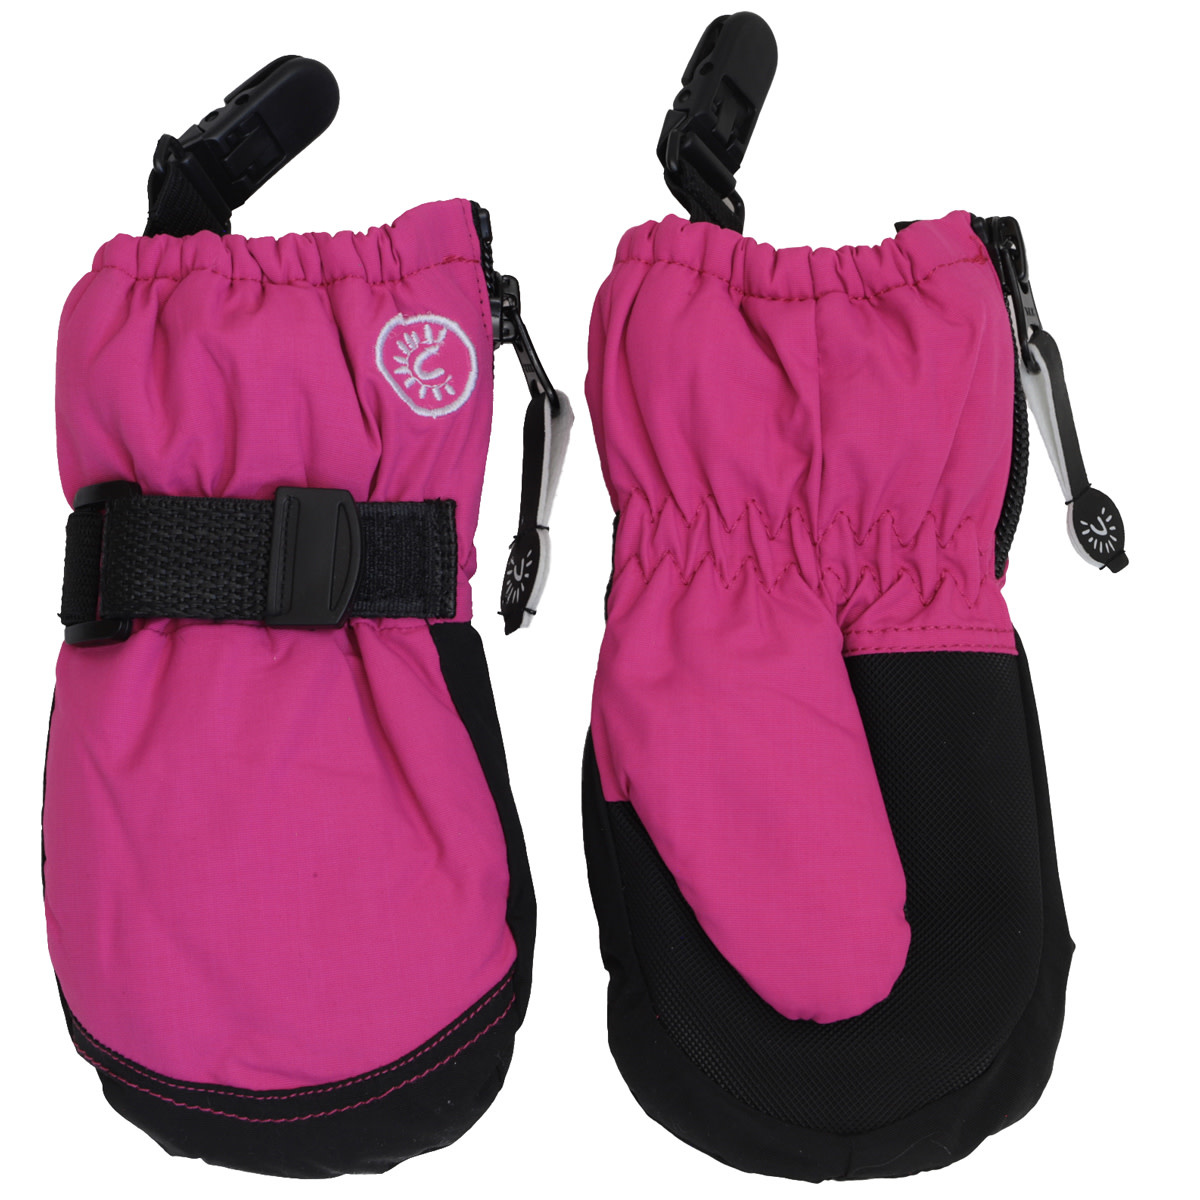 Waterproof Mittens with Clips